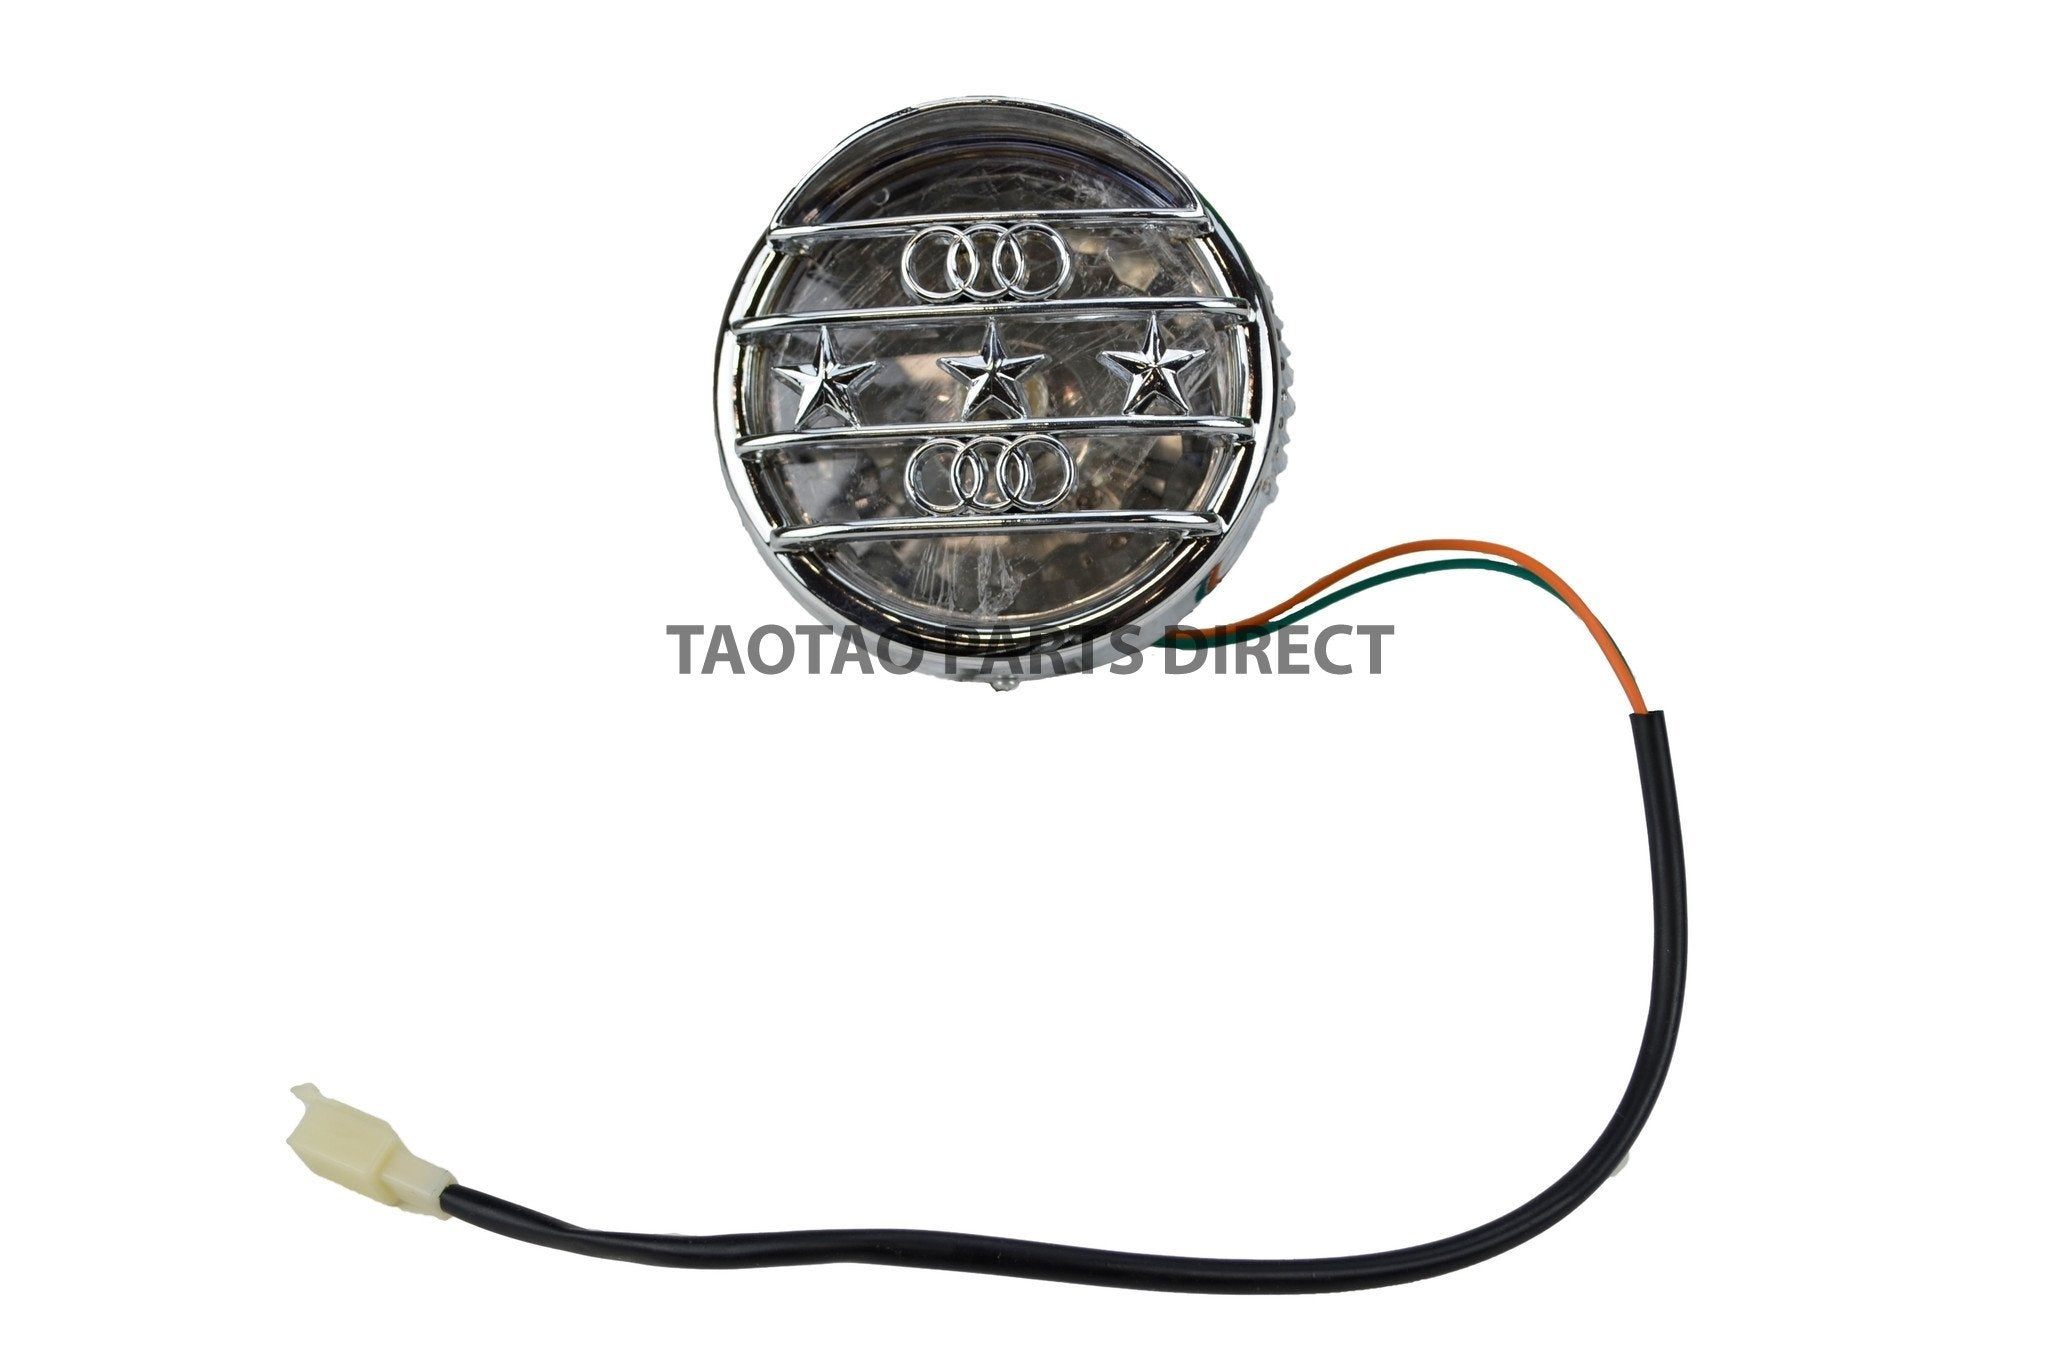 ATK125A Top Rack Light - TaoTaoPartsDirect.com